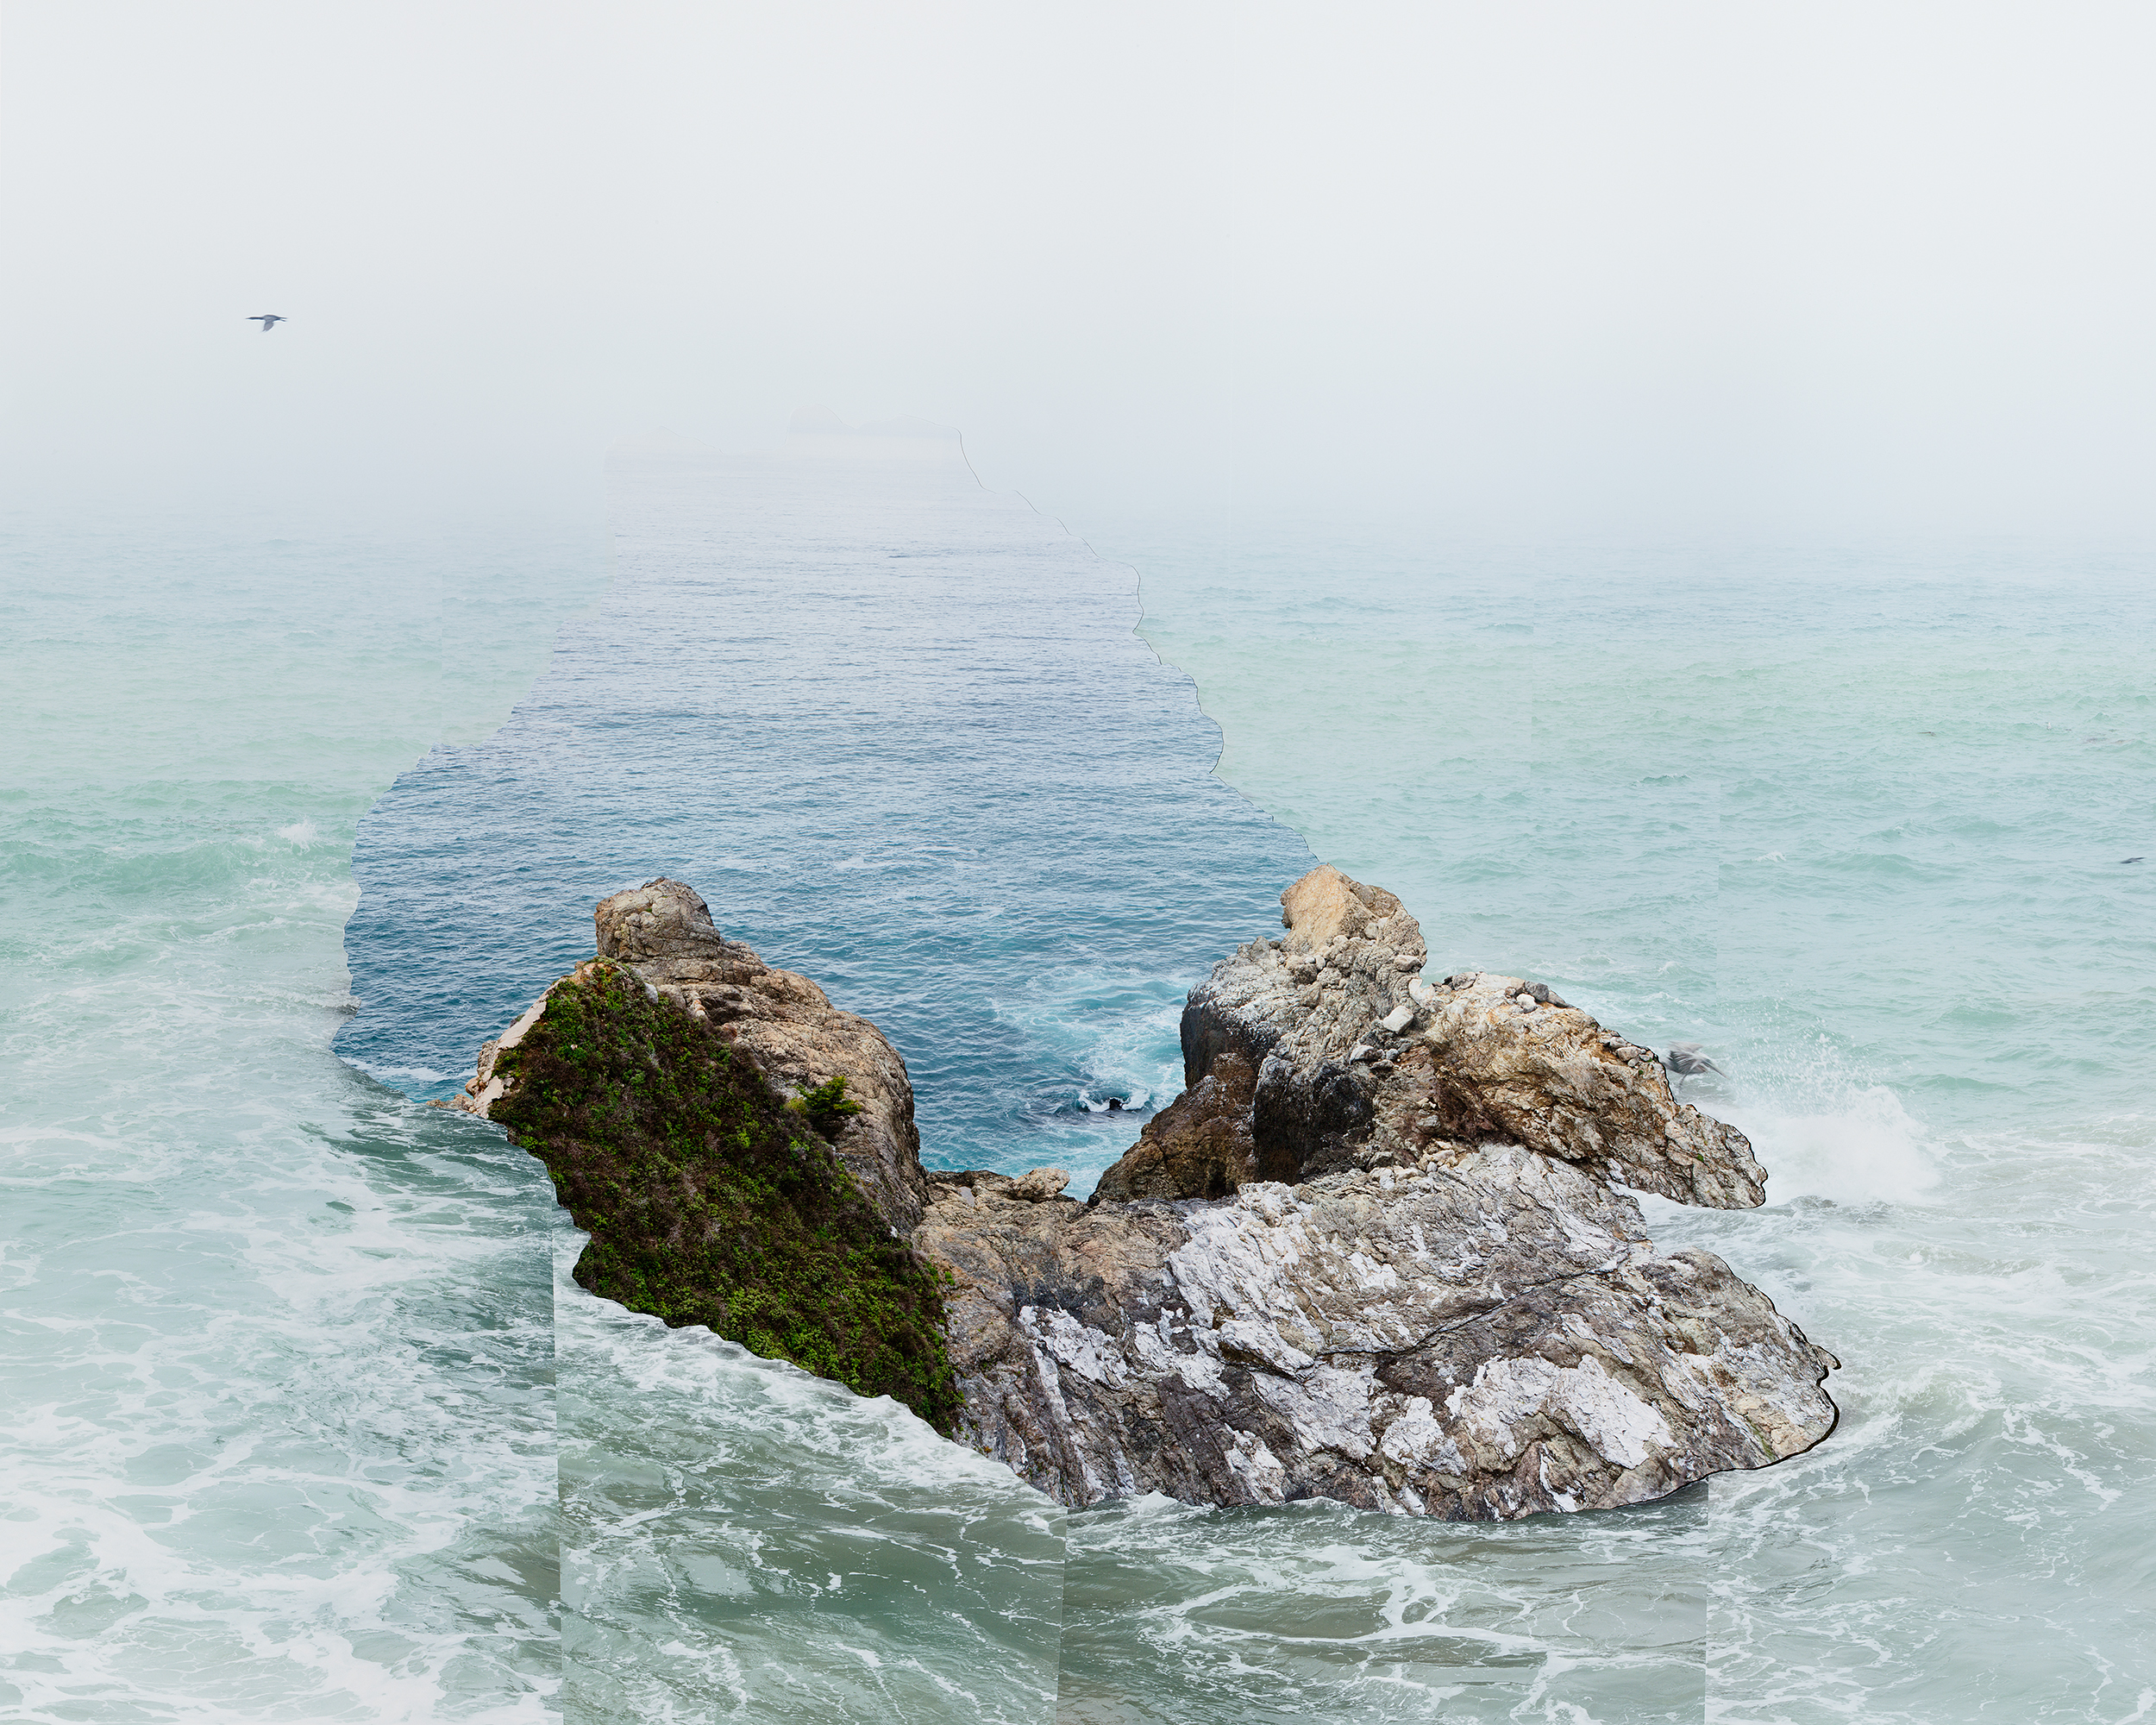 Laura Plageman,  Response to Print of Pelican Rock, California , 2014  Digital pigment print, 32 x 40 in, edition of 4; 20 x 25 in, edition of 5   Inquire